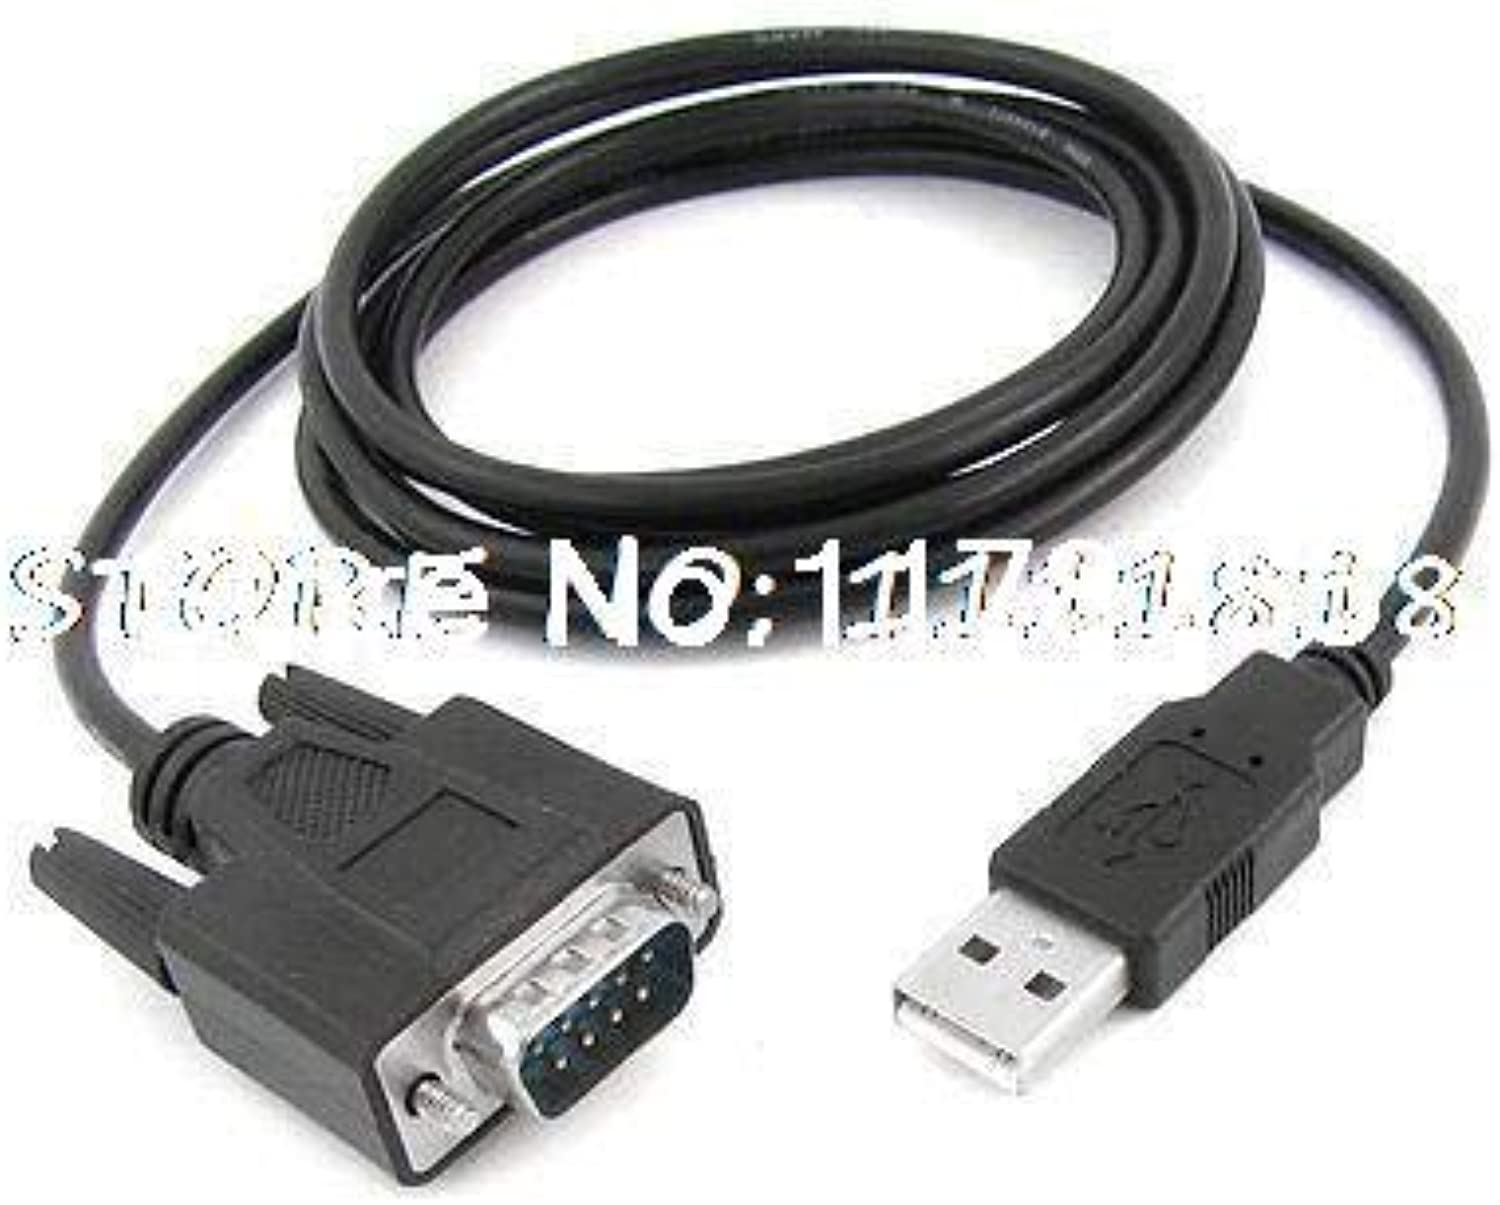 2 Meter 9Pin RS232 to USB 2.0 PLC Programming Cable for PWS5610 VH VB